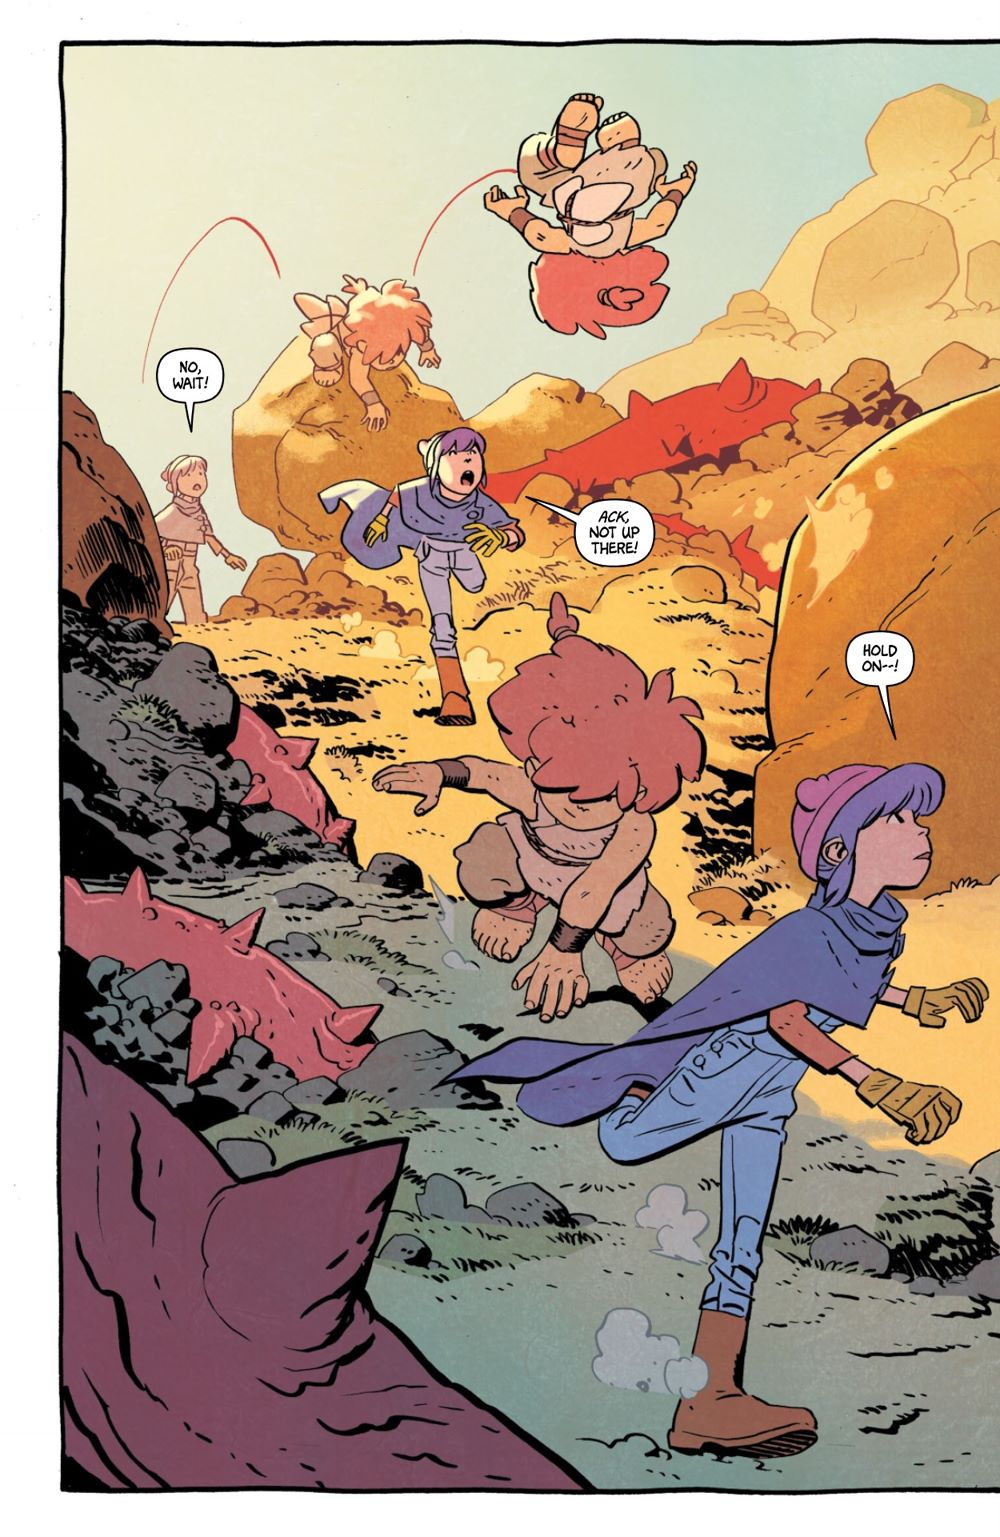 JONNA-3-REFERENCE-07 ComicList Previews: JONNA AND THE UNPOSSIBLE MONSTERS #3